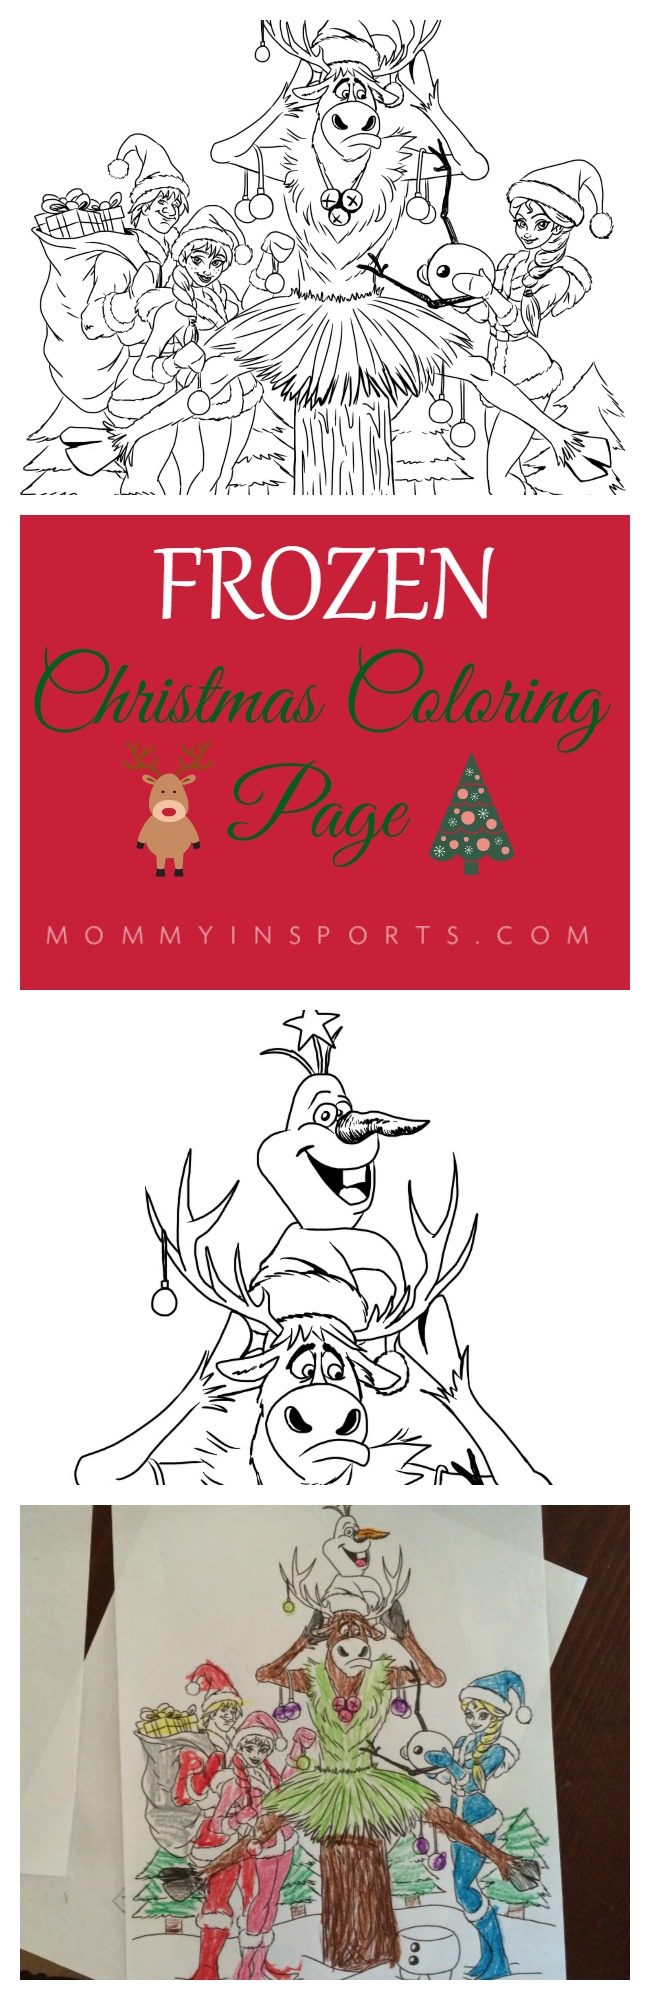 Frozen Christmas Coloring Page Mommy In Sports